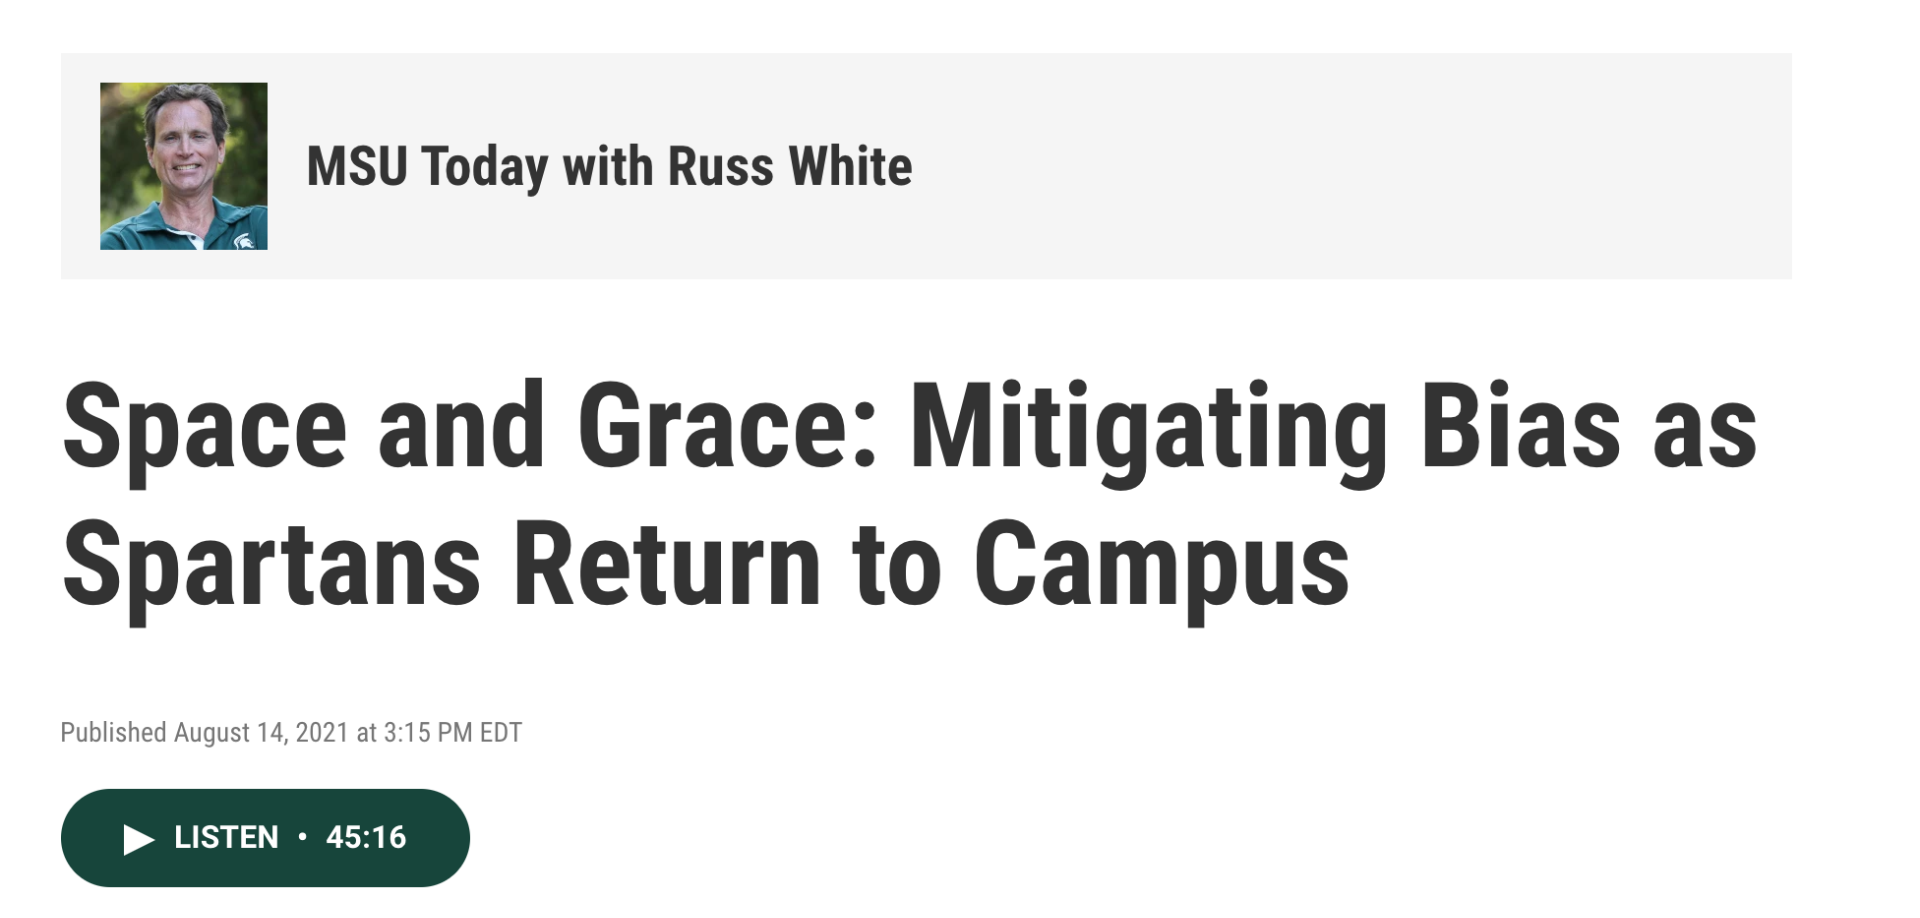 Screen shot of the website with the MSU Today with Russ White interview